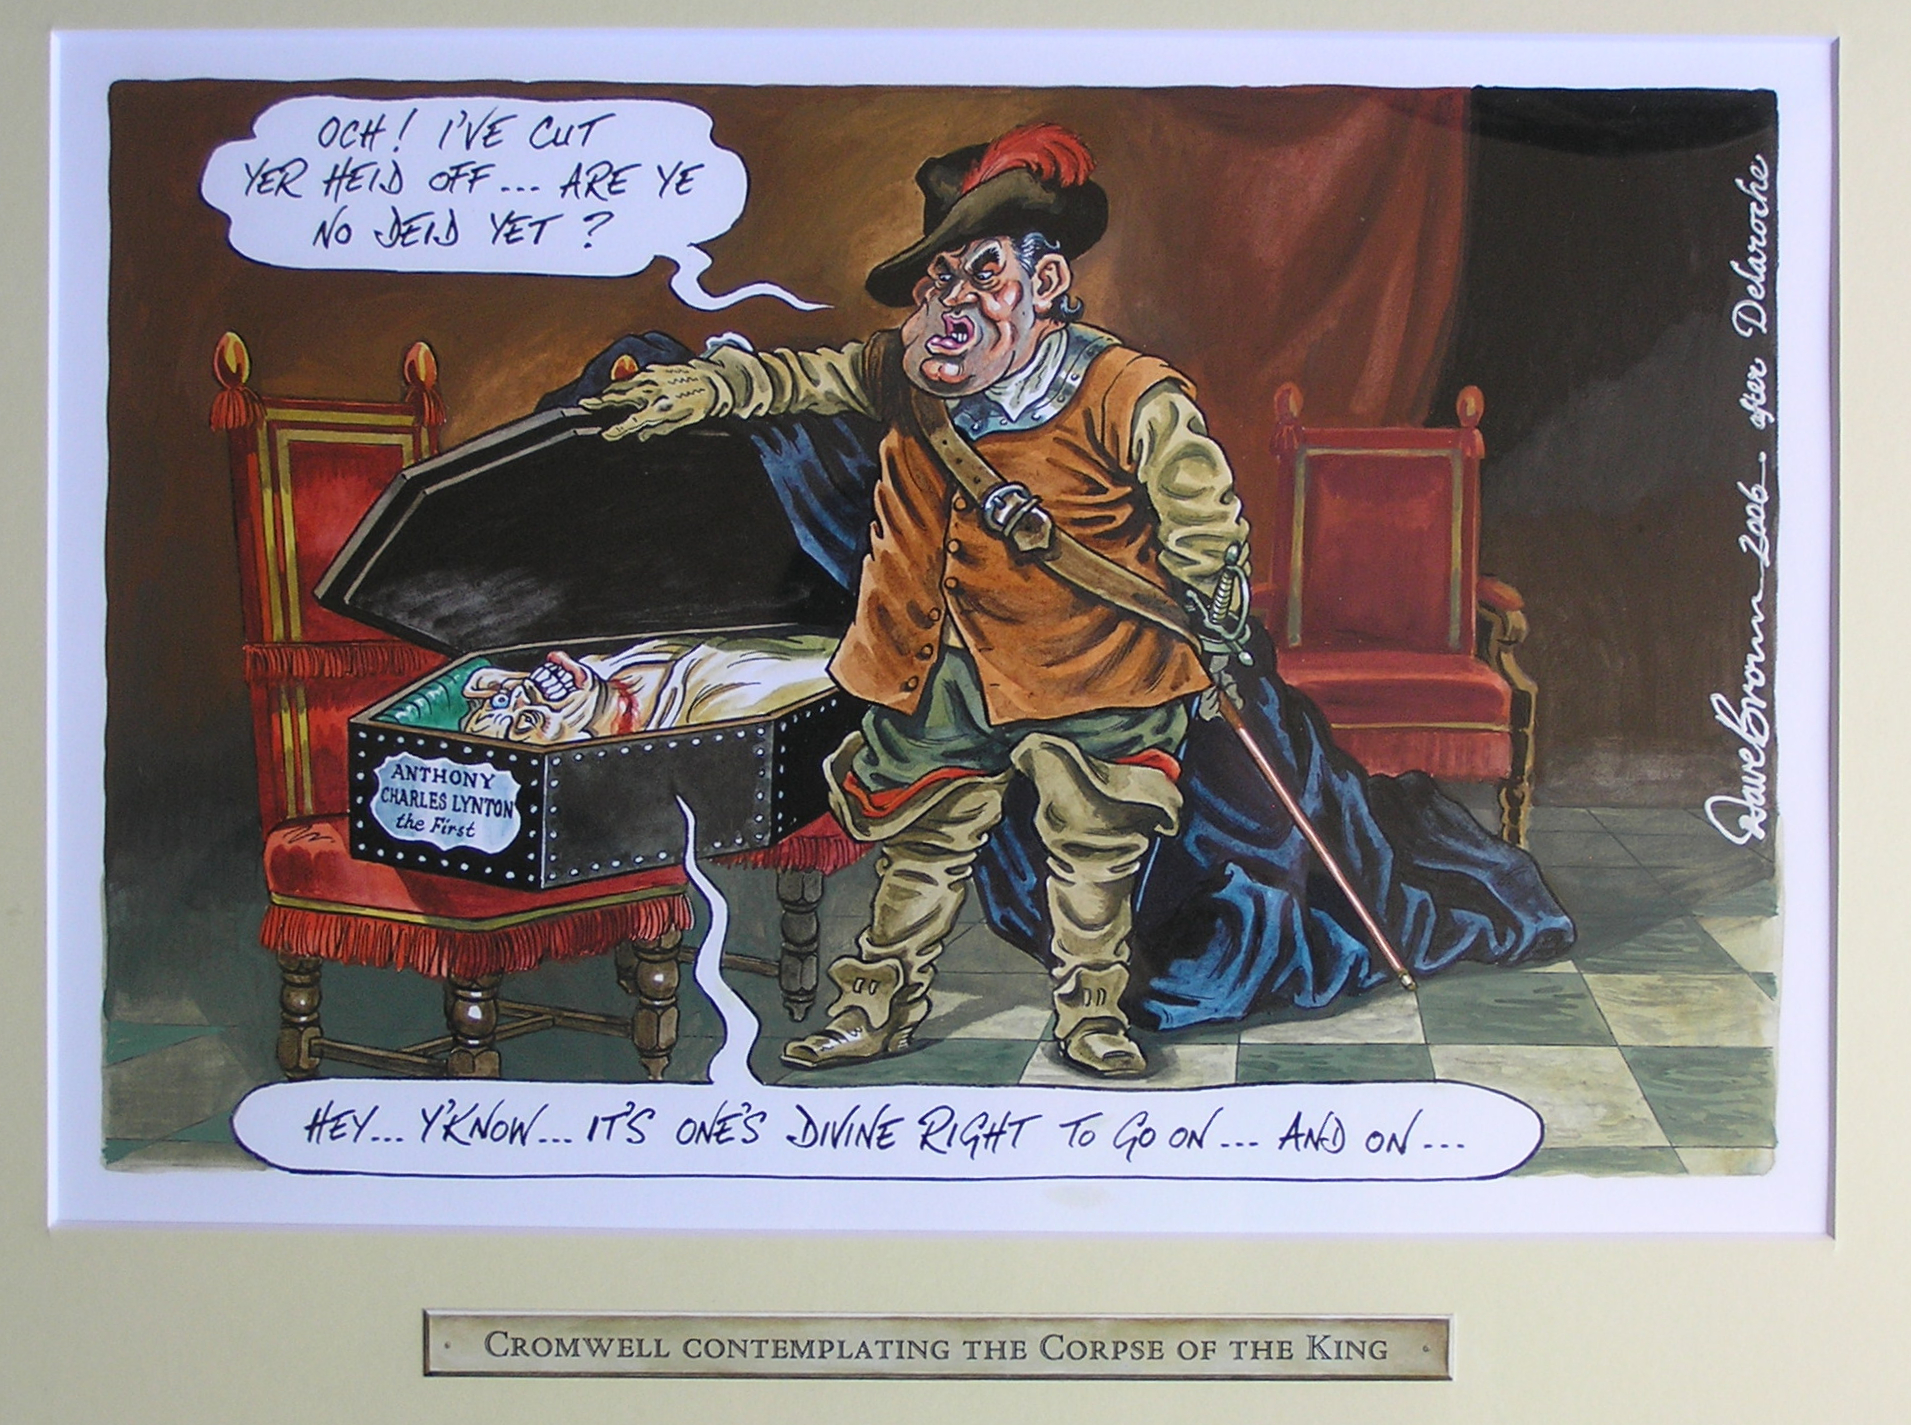 'Cromwell Contemplating the Corpse of the King' by Dave Brown, 2006. thumbnail